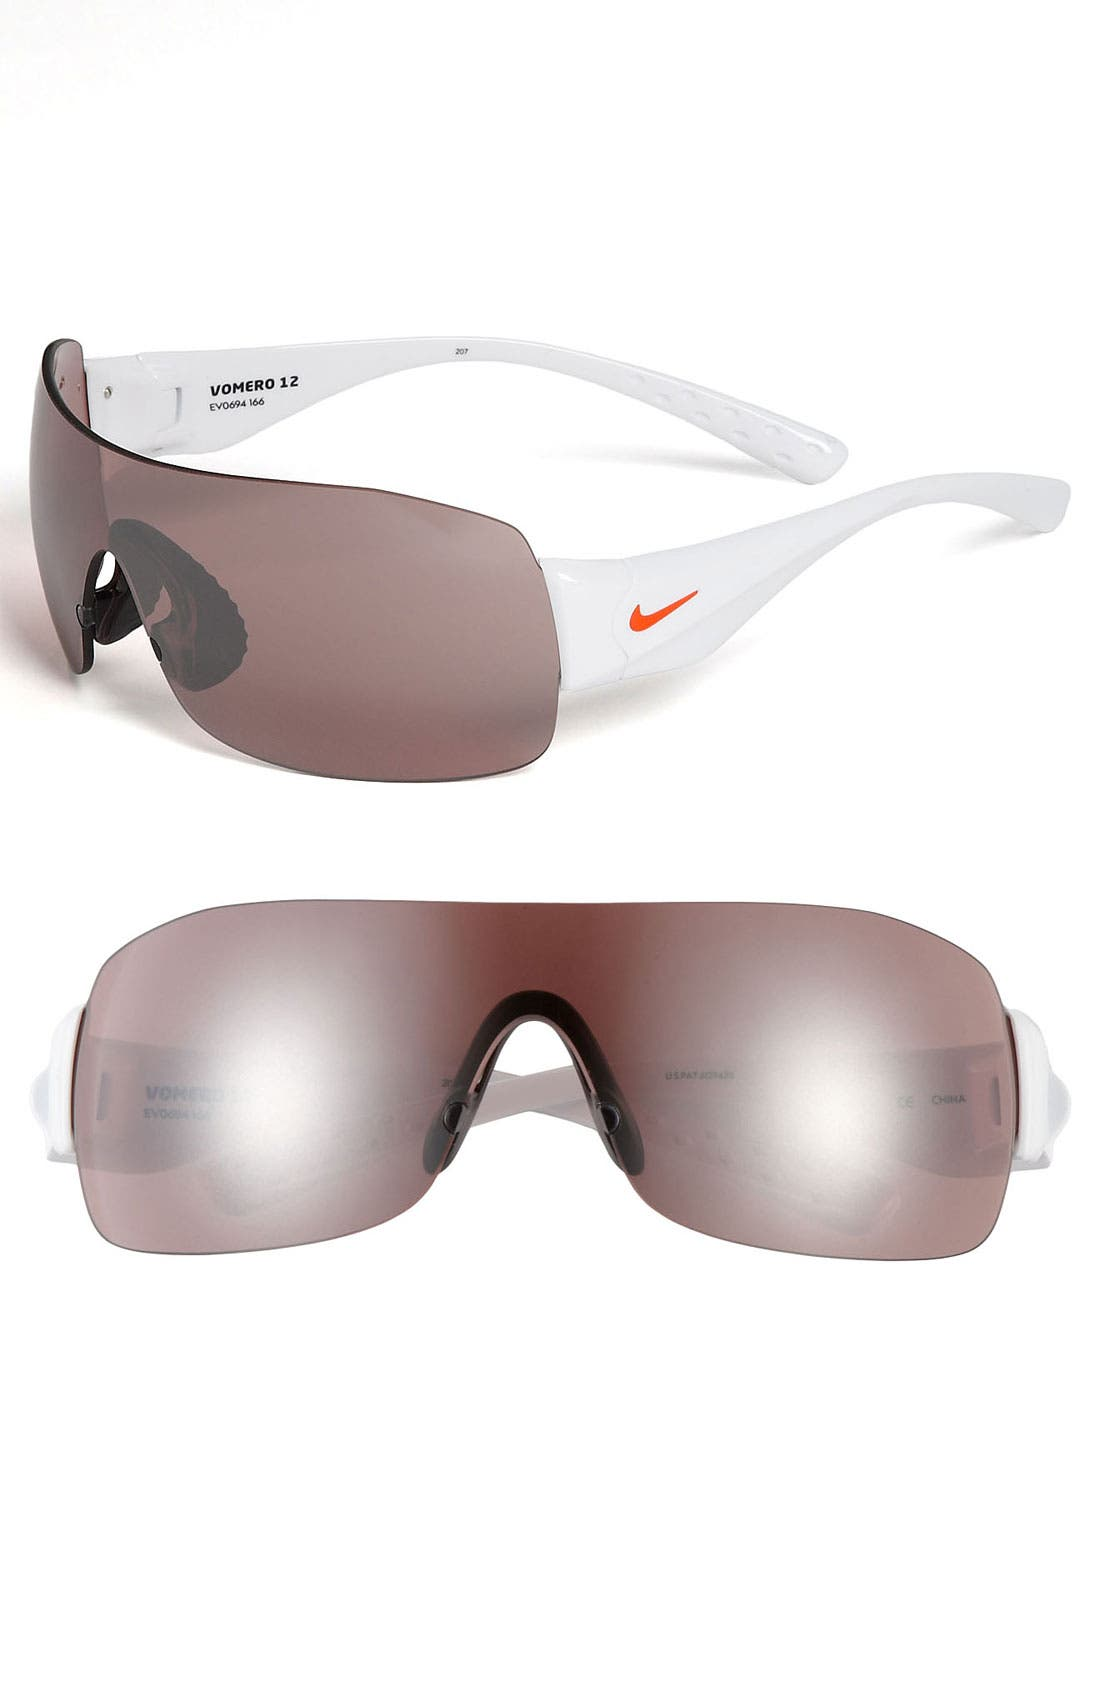 Main Image - Nike 'Vomero 12.E' 59mm Sunglasses